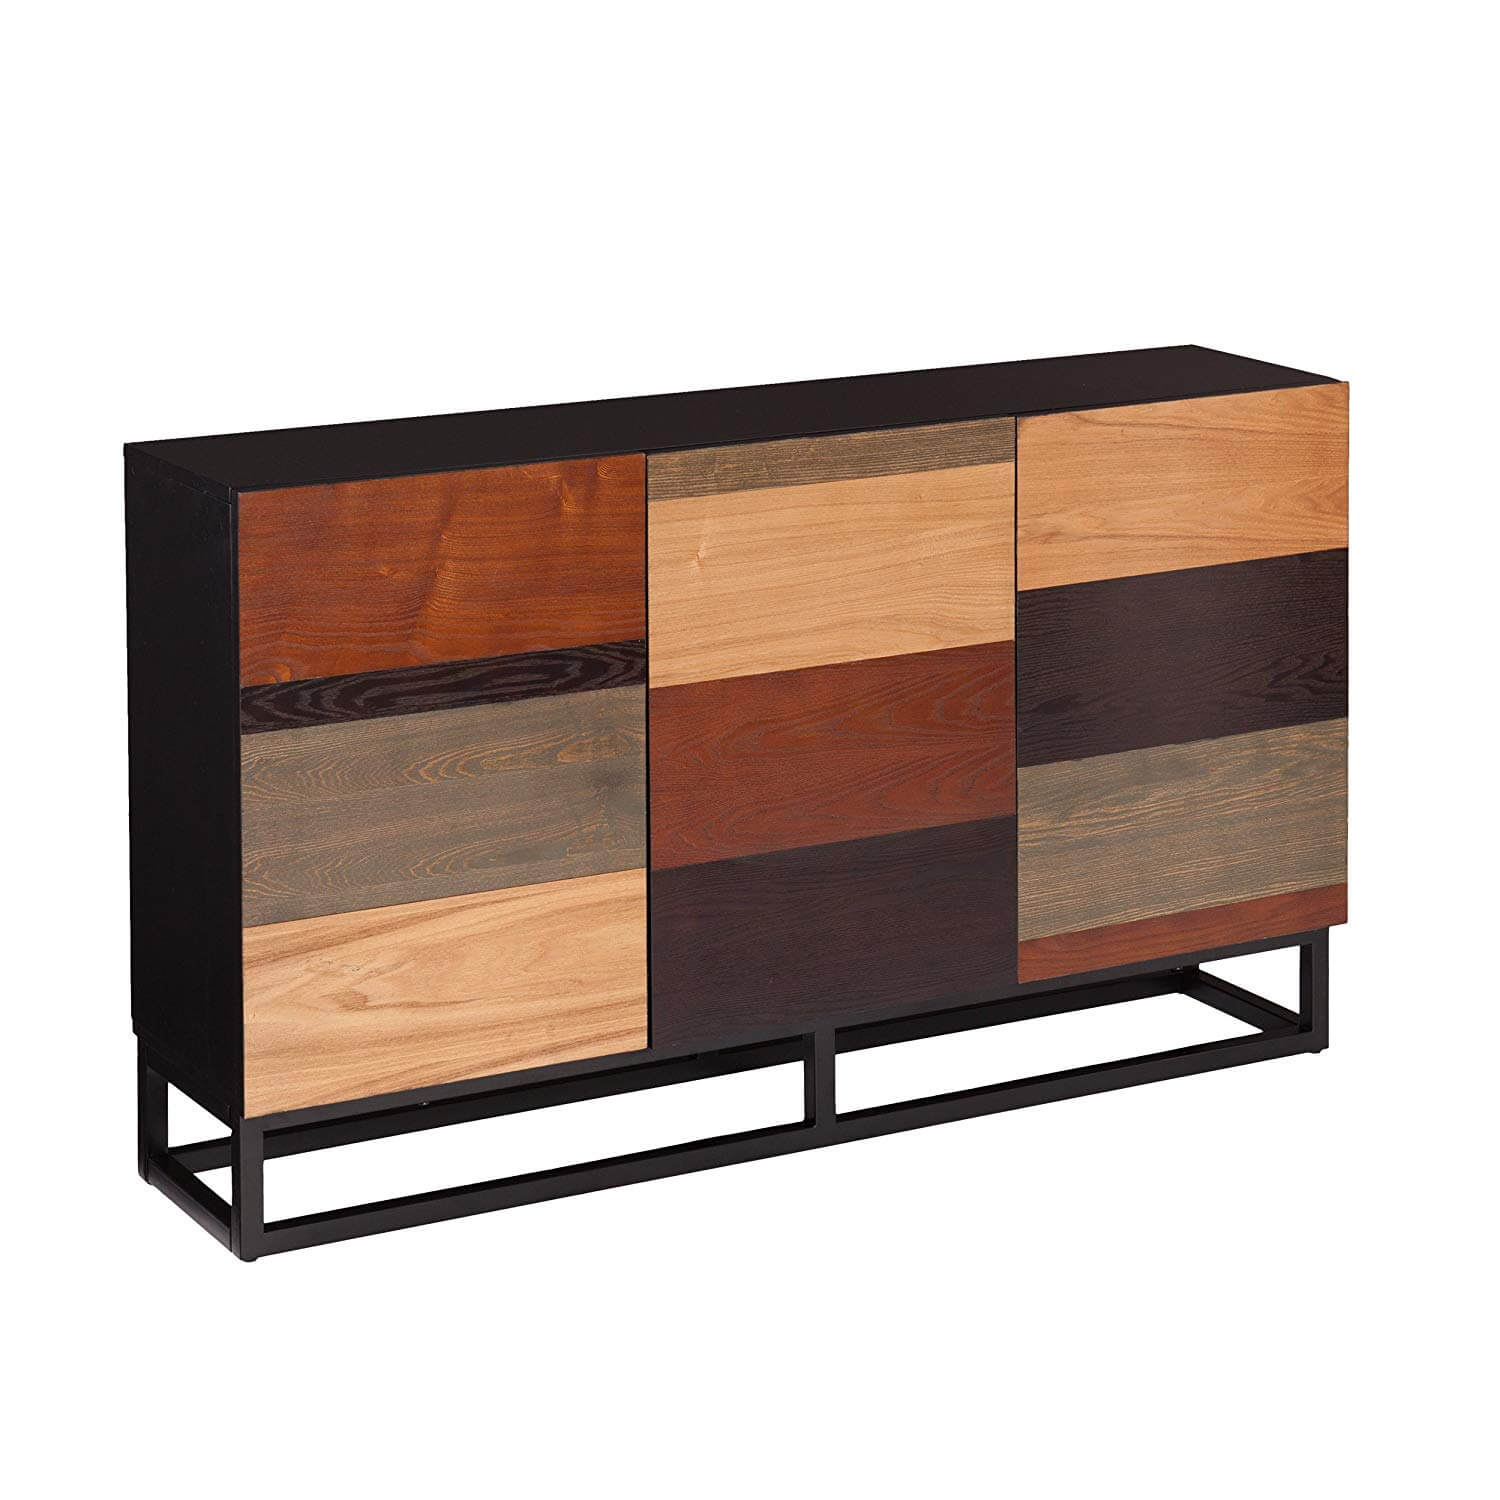 Mid century credenzas with a paneled wood facade.